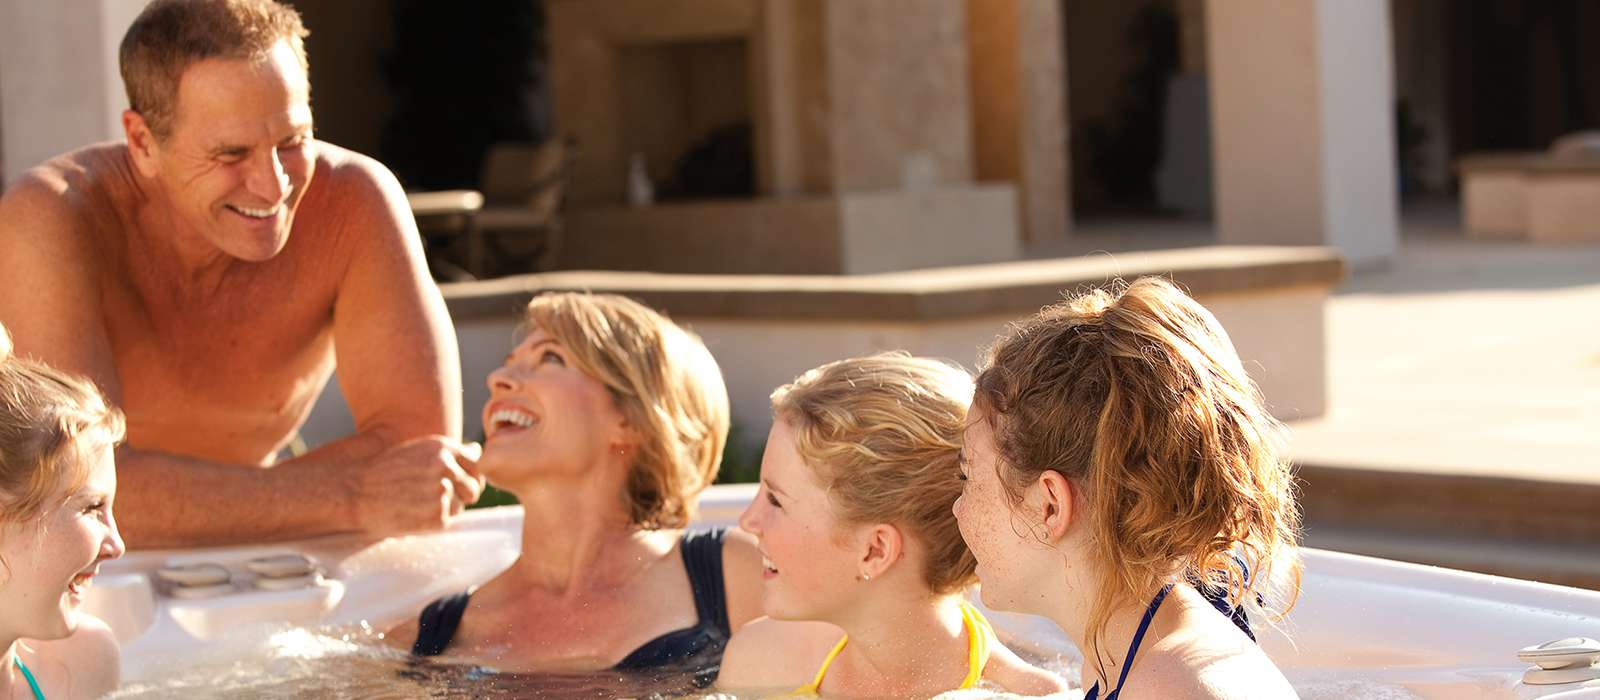 Spend quality time with the whole family in the Aria spa, with comfortable seating and jet combinations for 5 people.